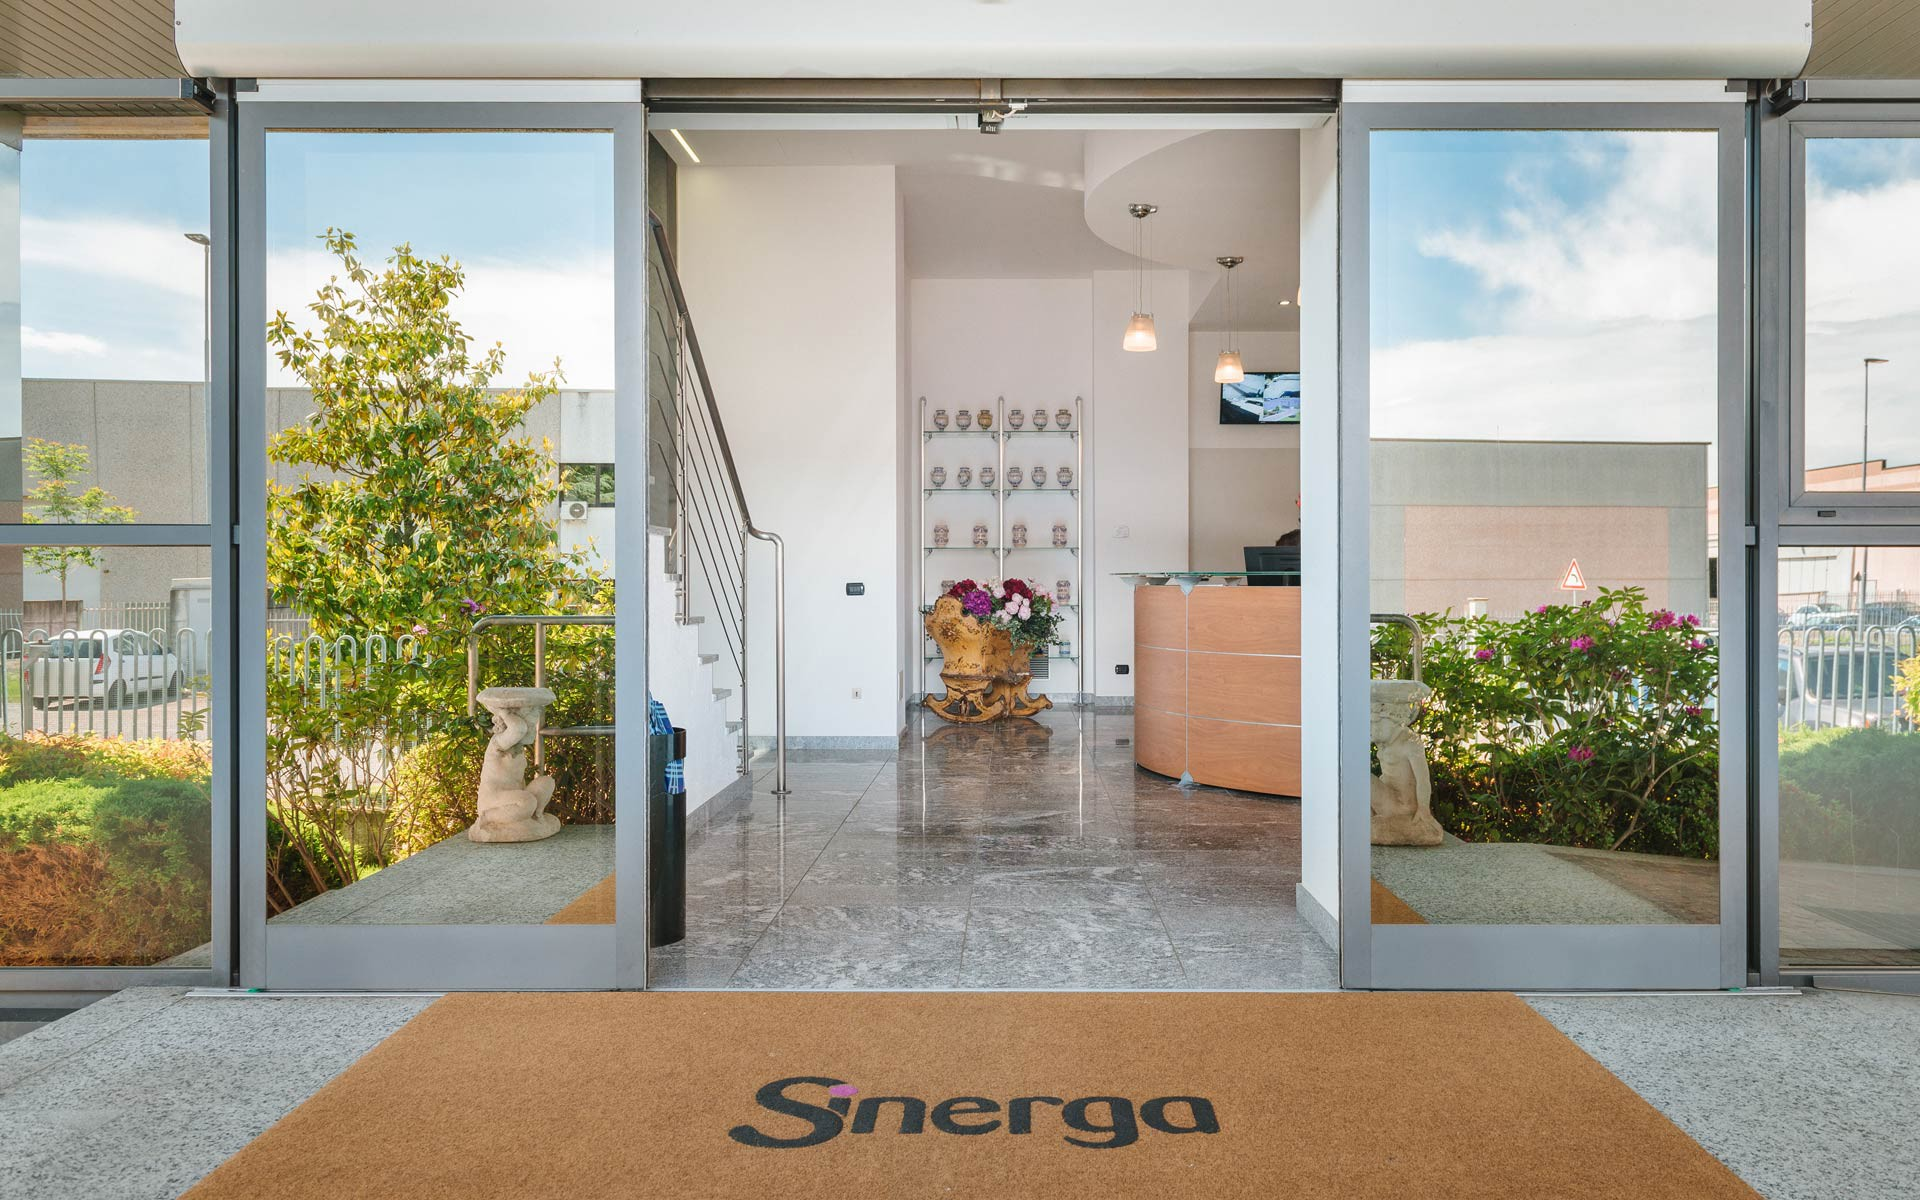 Sinerga's headquarter in Gorla Maggiore comply with quality and environmental standards and assures his clients the highest quality products